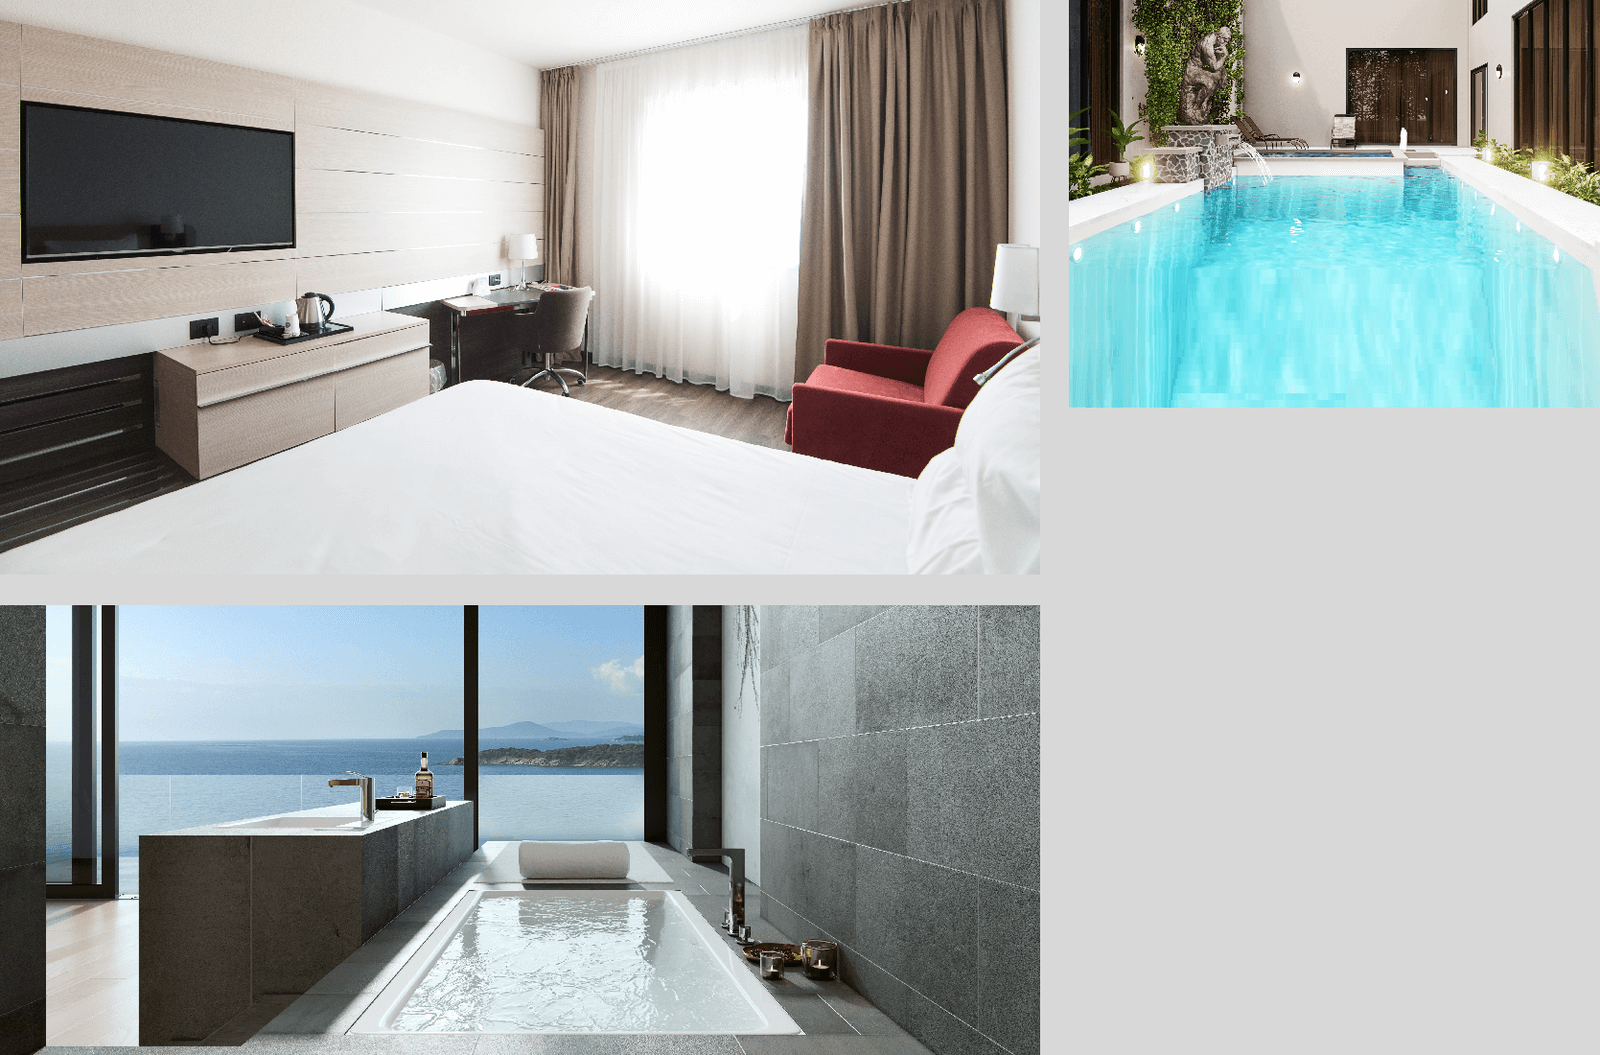 bright and modern looking hotel rooms with scenic views